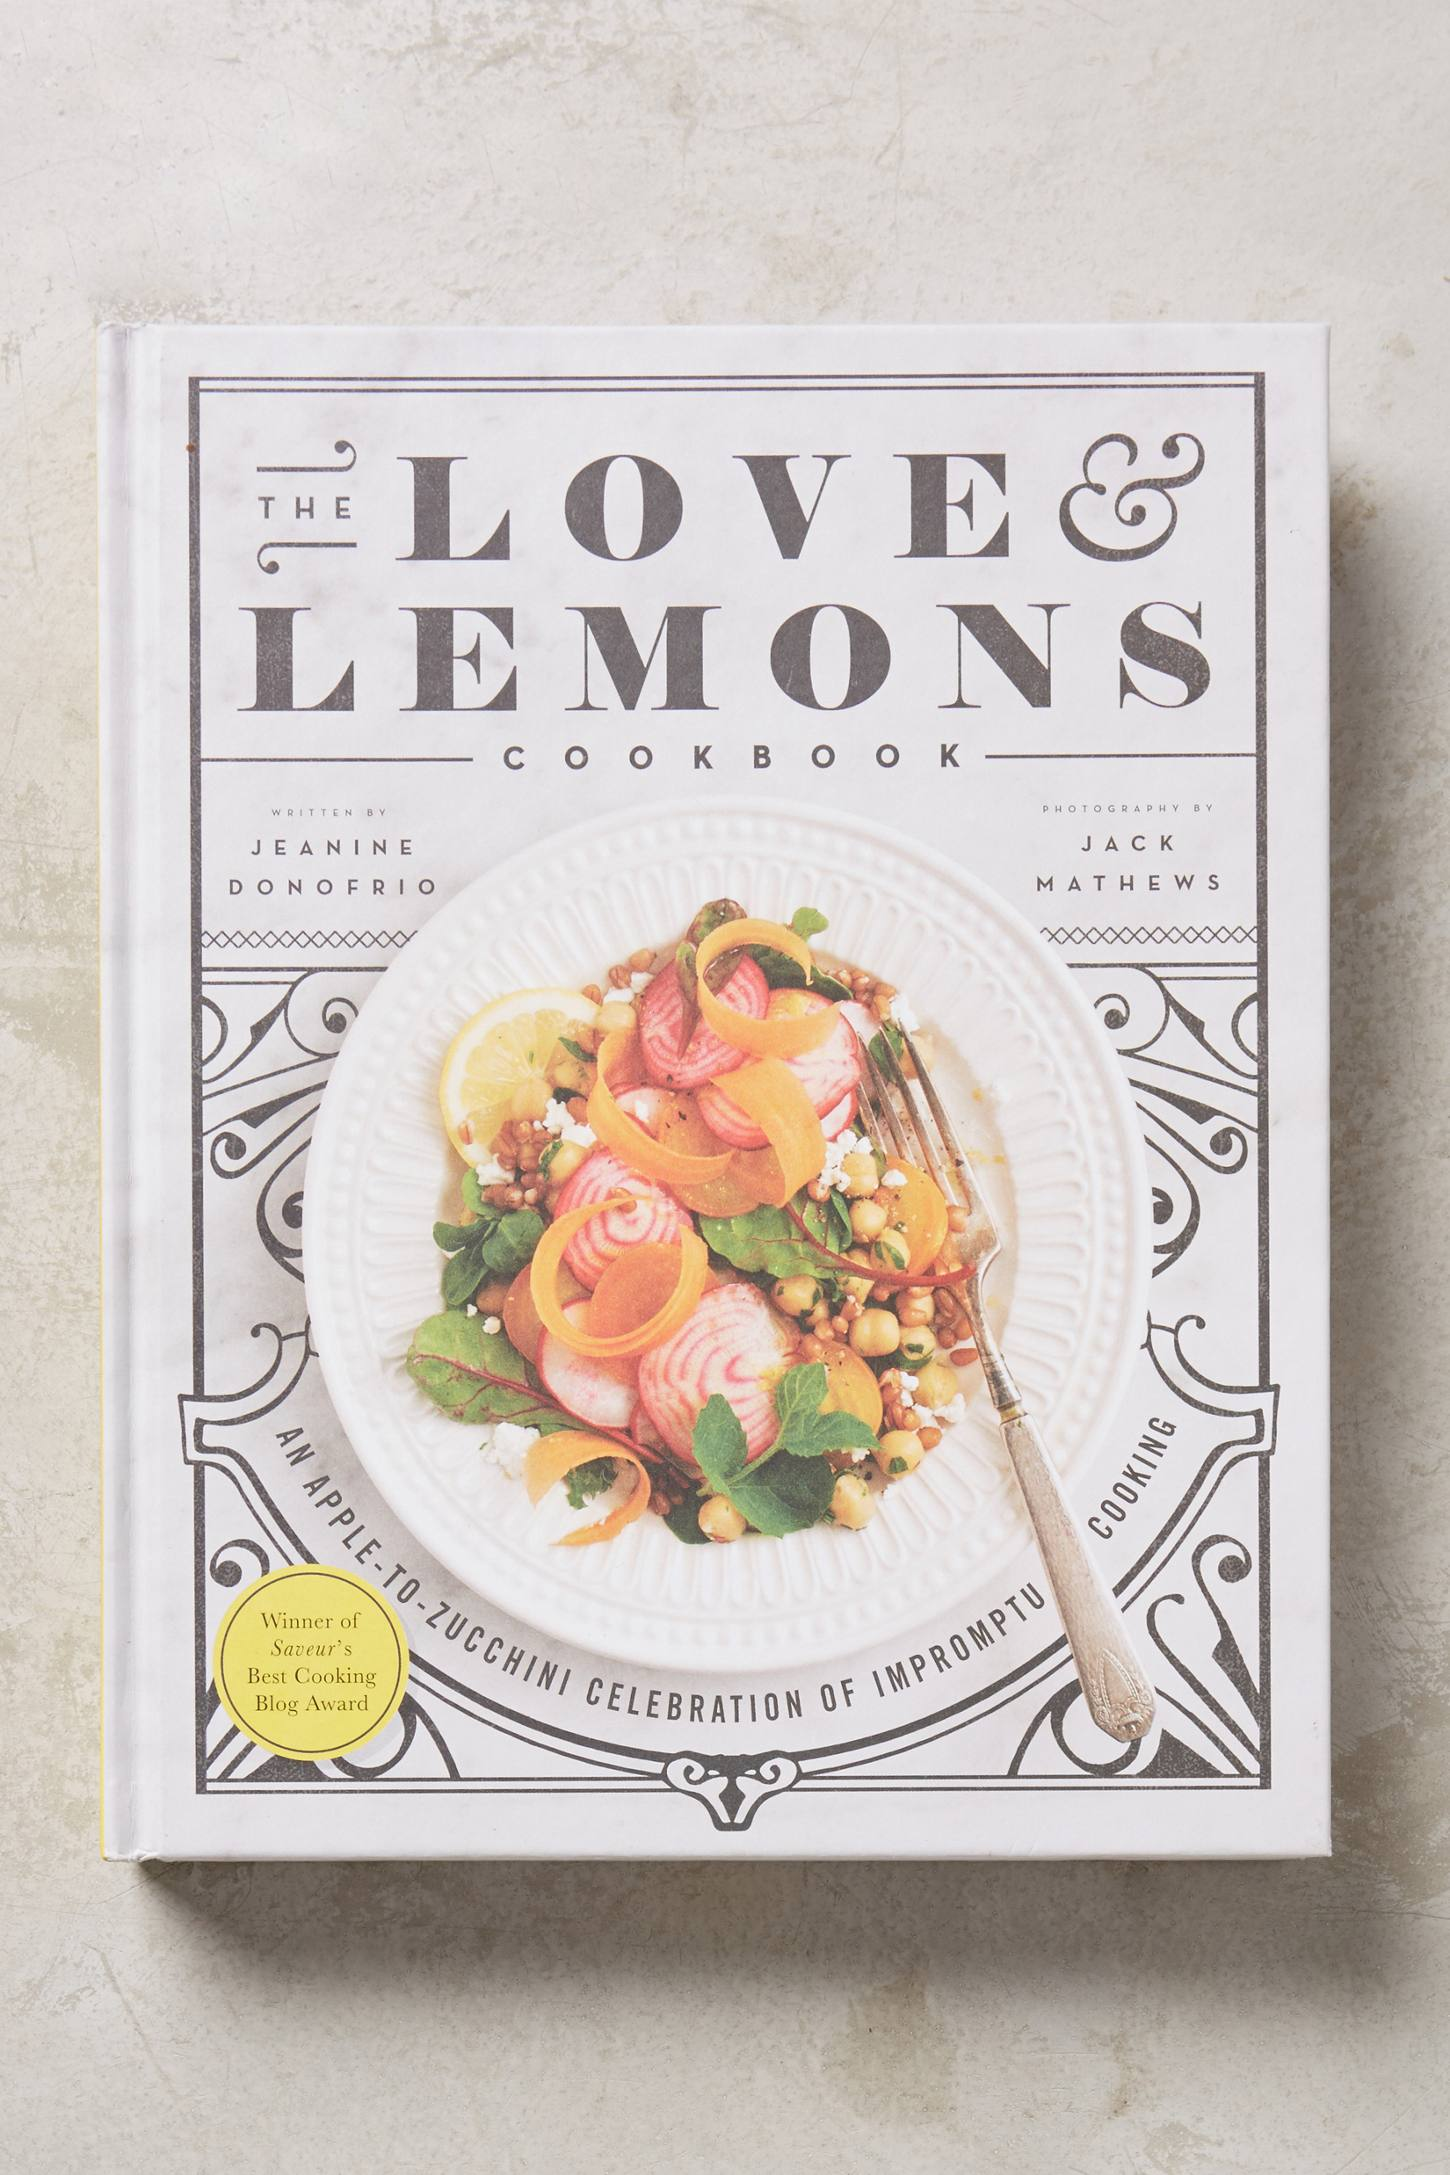 Love and Lemons cookbook from Anthropologie